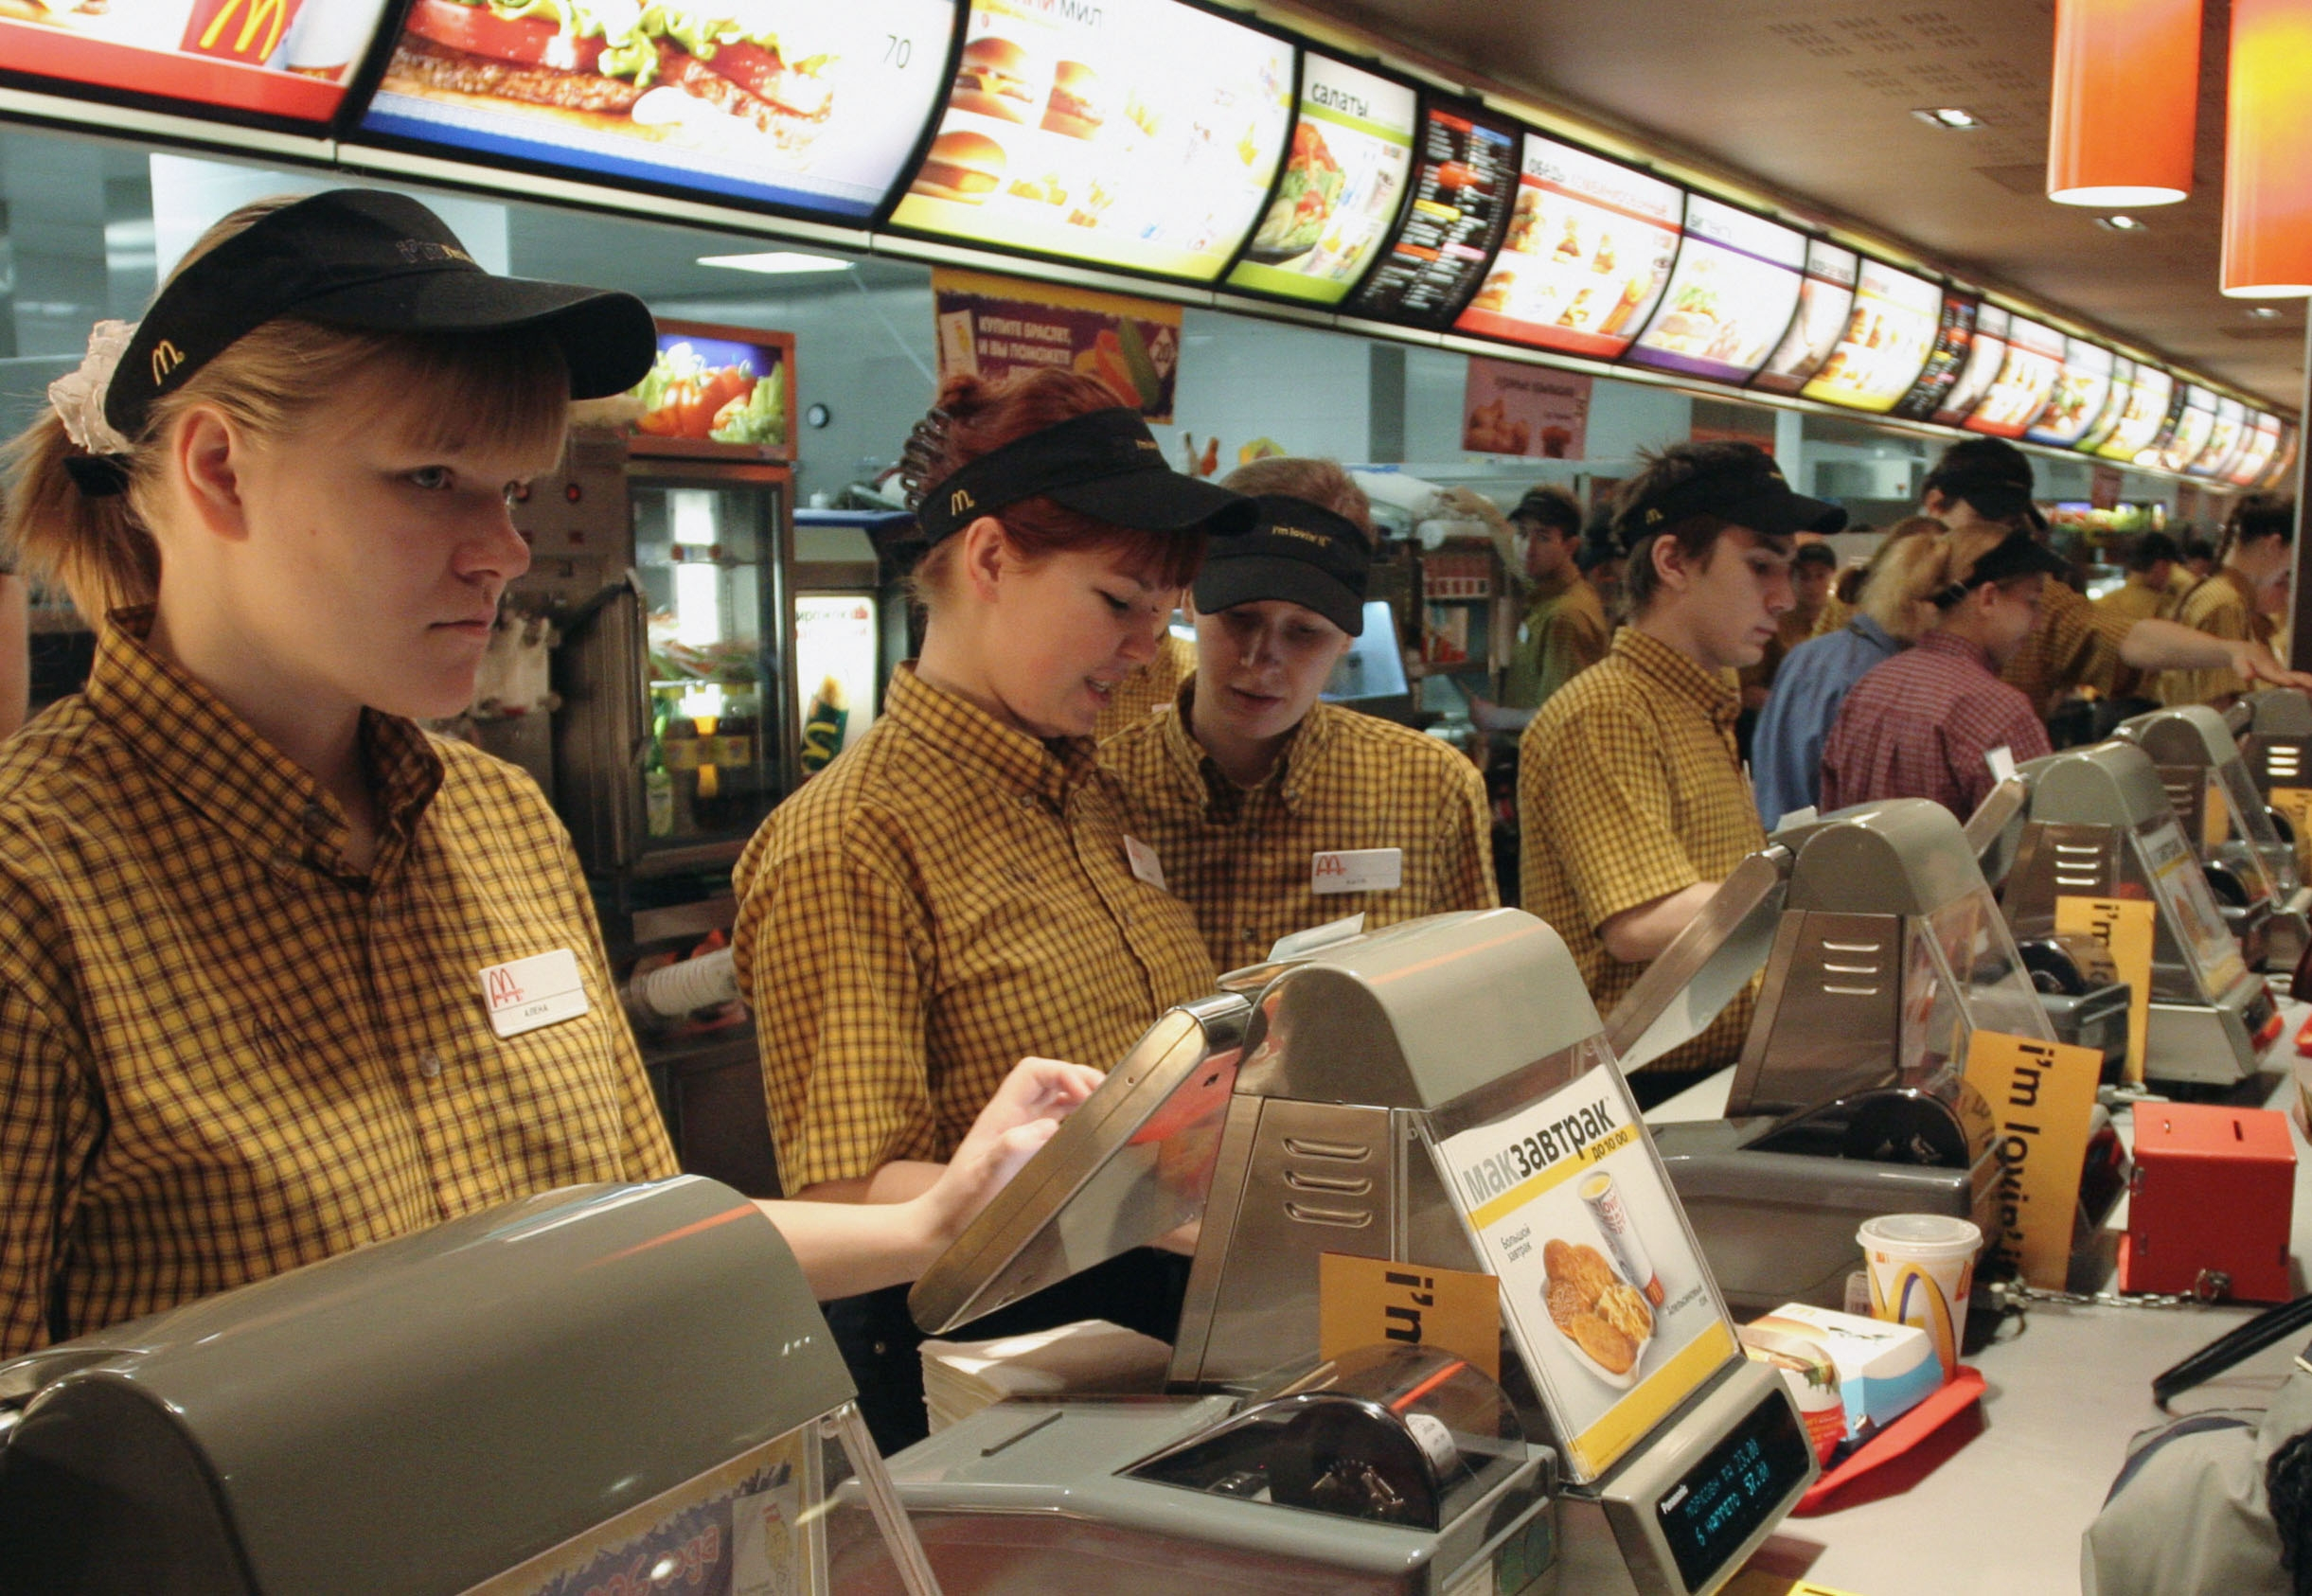 Cashiers standing behind a counter at a McDonald's